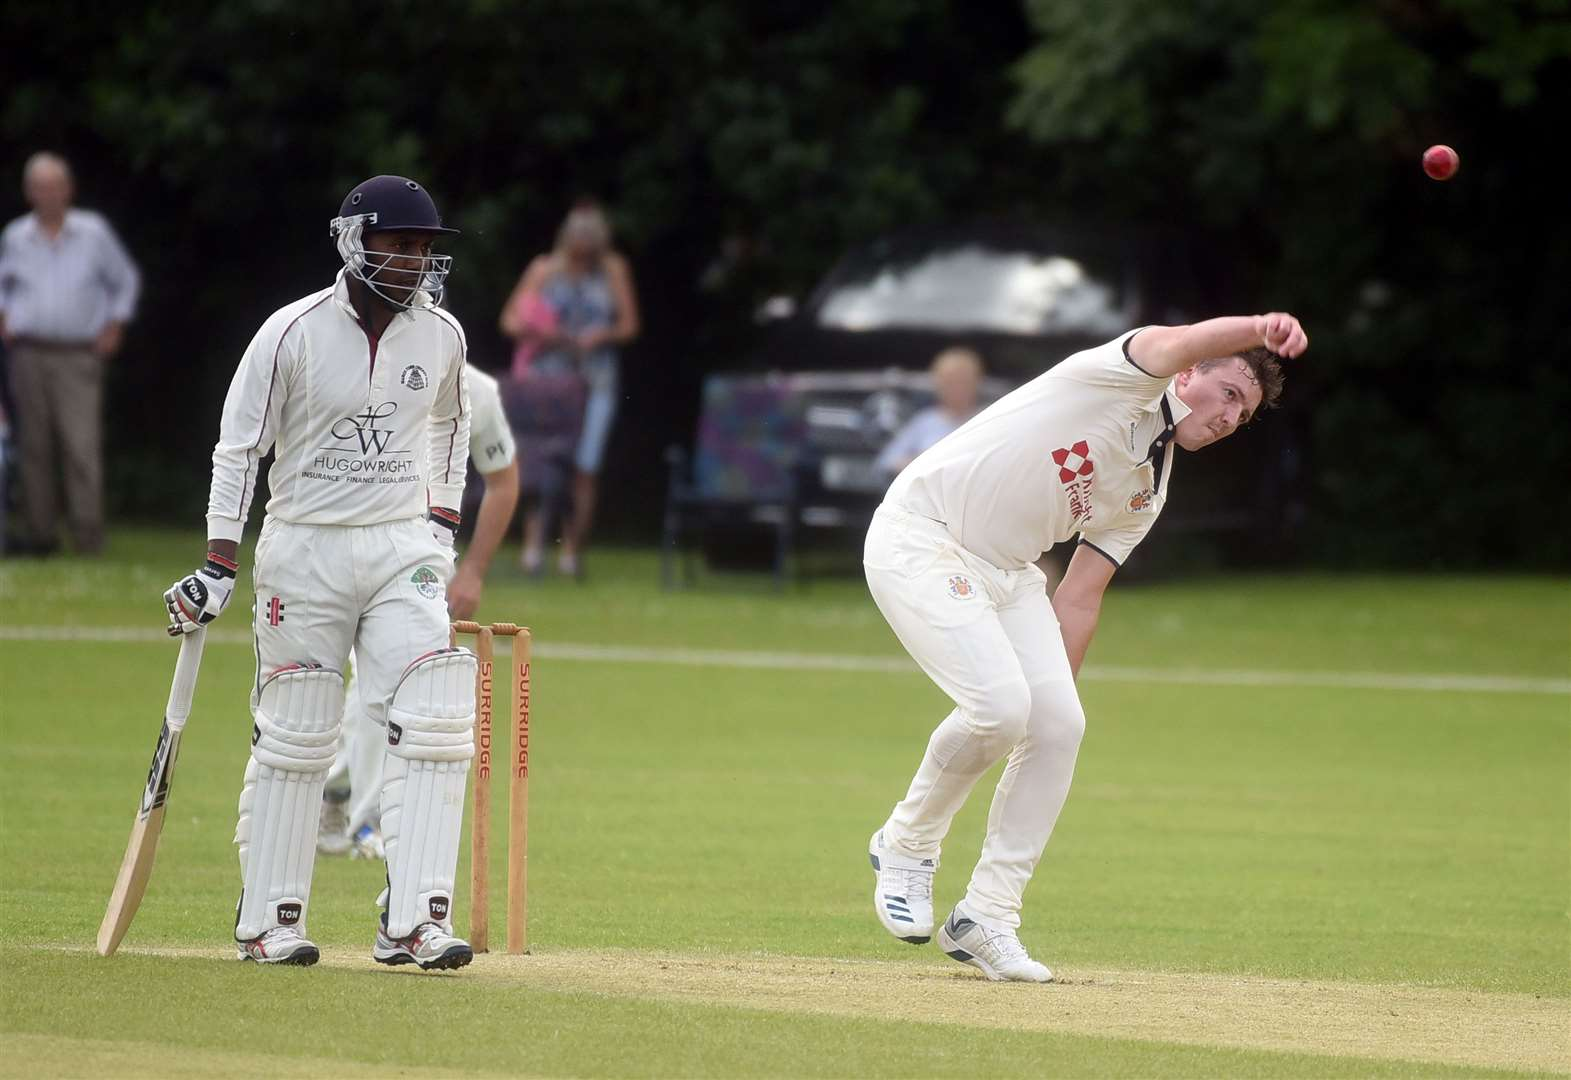 Cricket: Find out how Wisbech CC ended Whitings Cambs League season